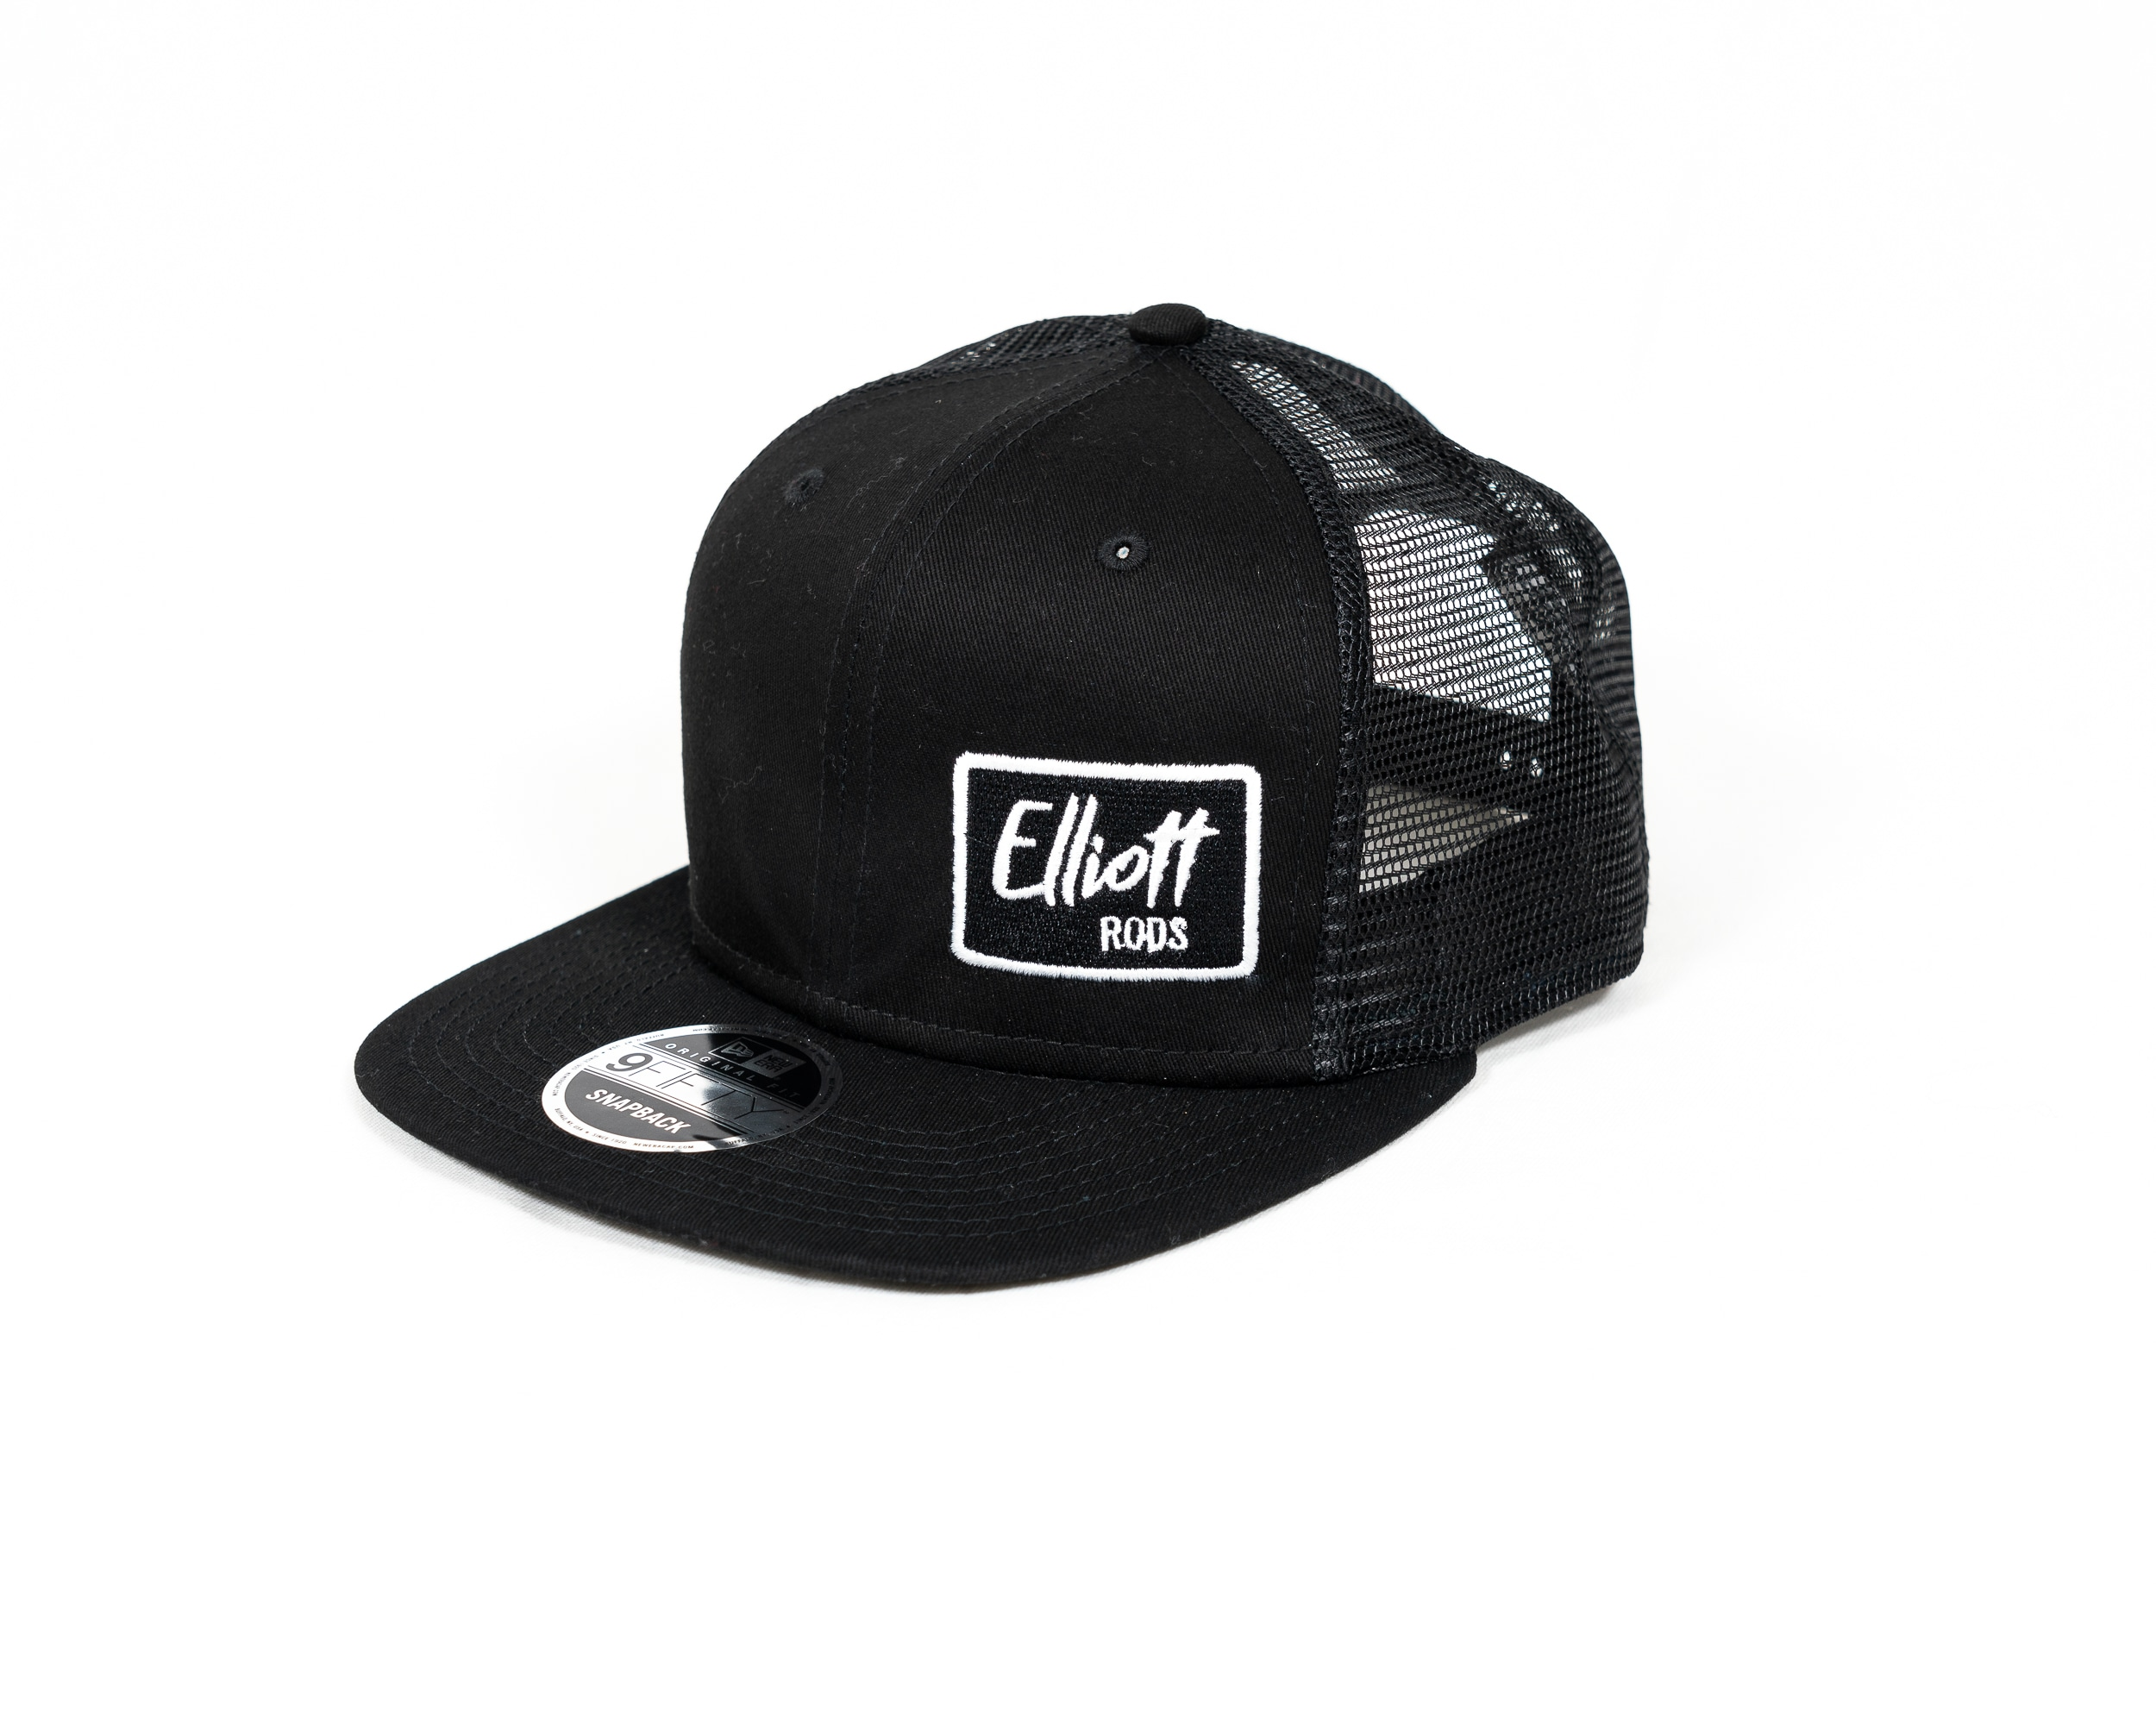 Elliott Rods 9fifty Snapback Hat